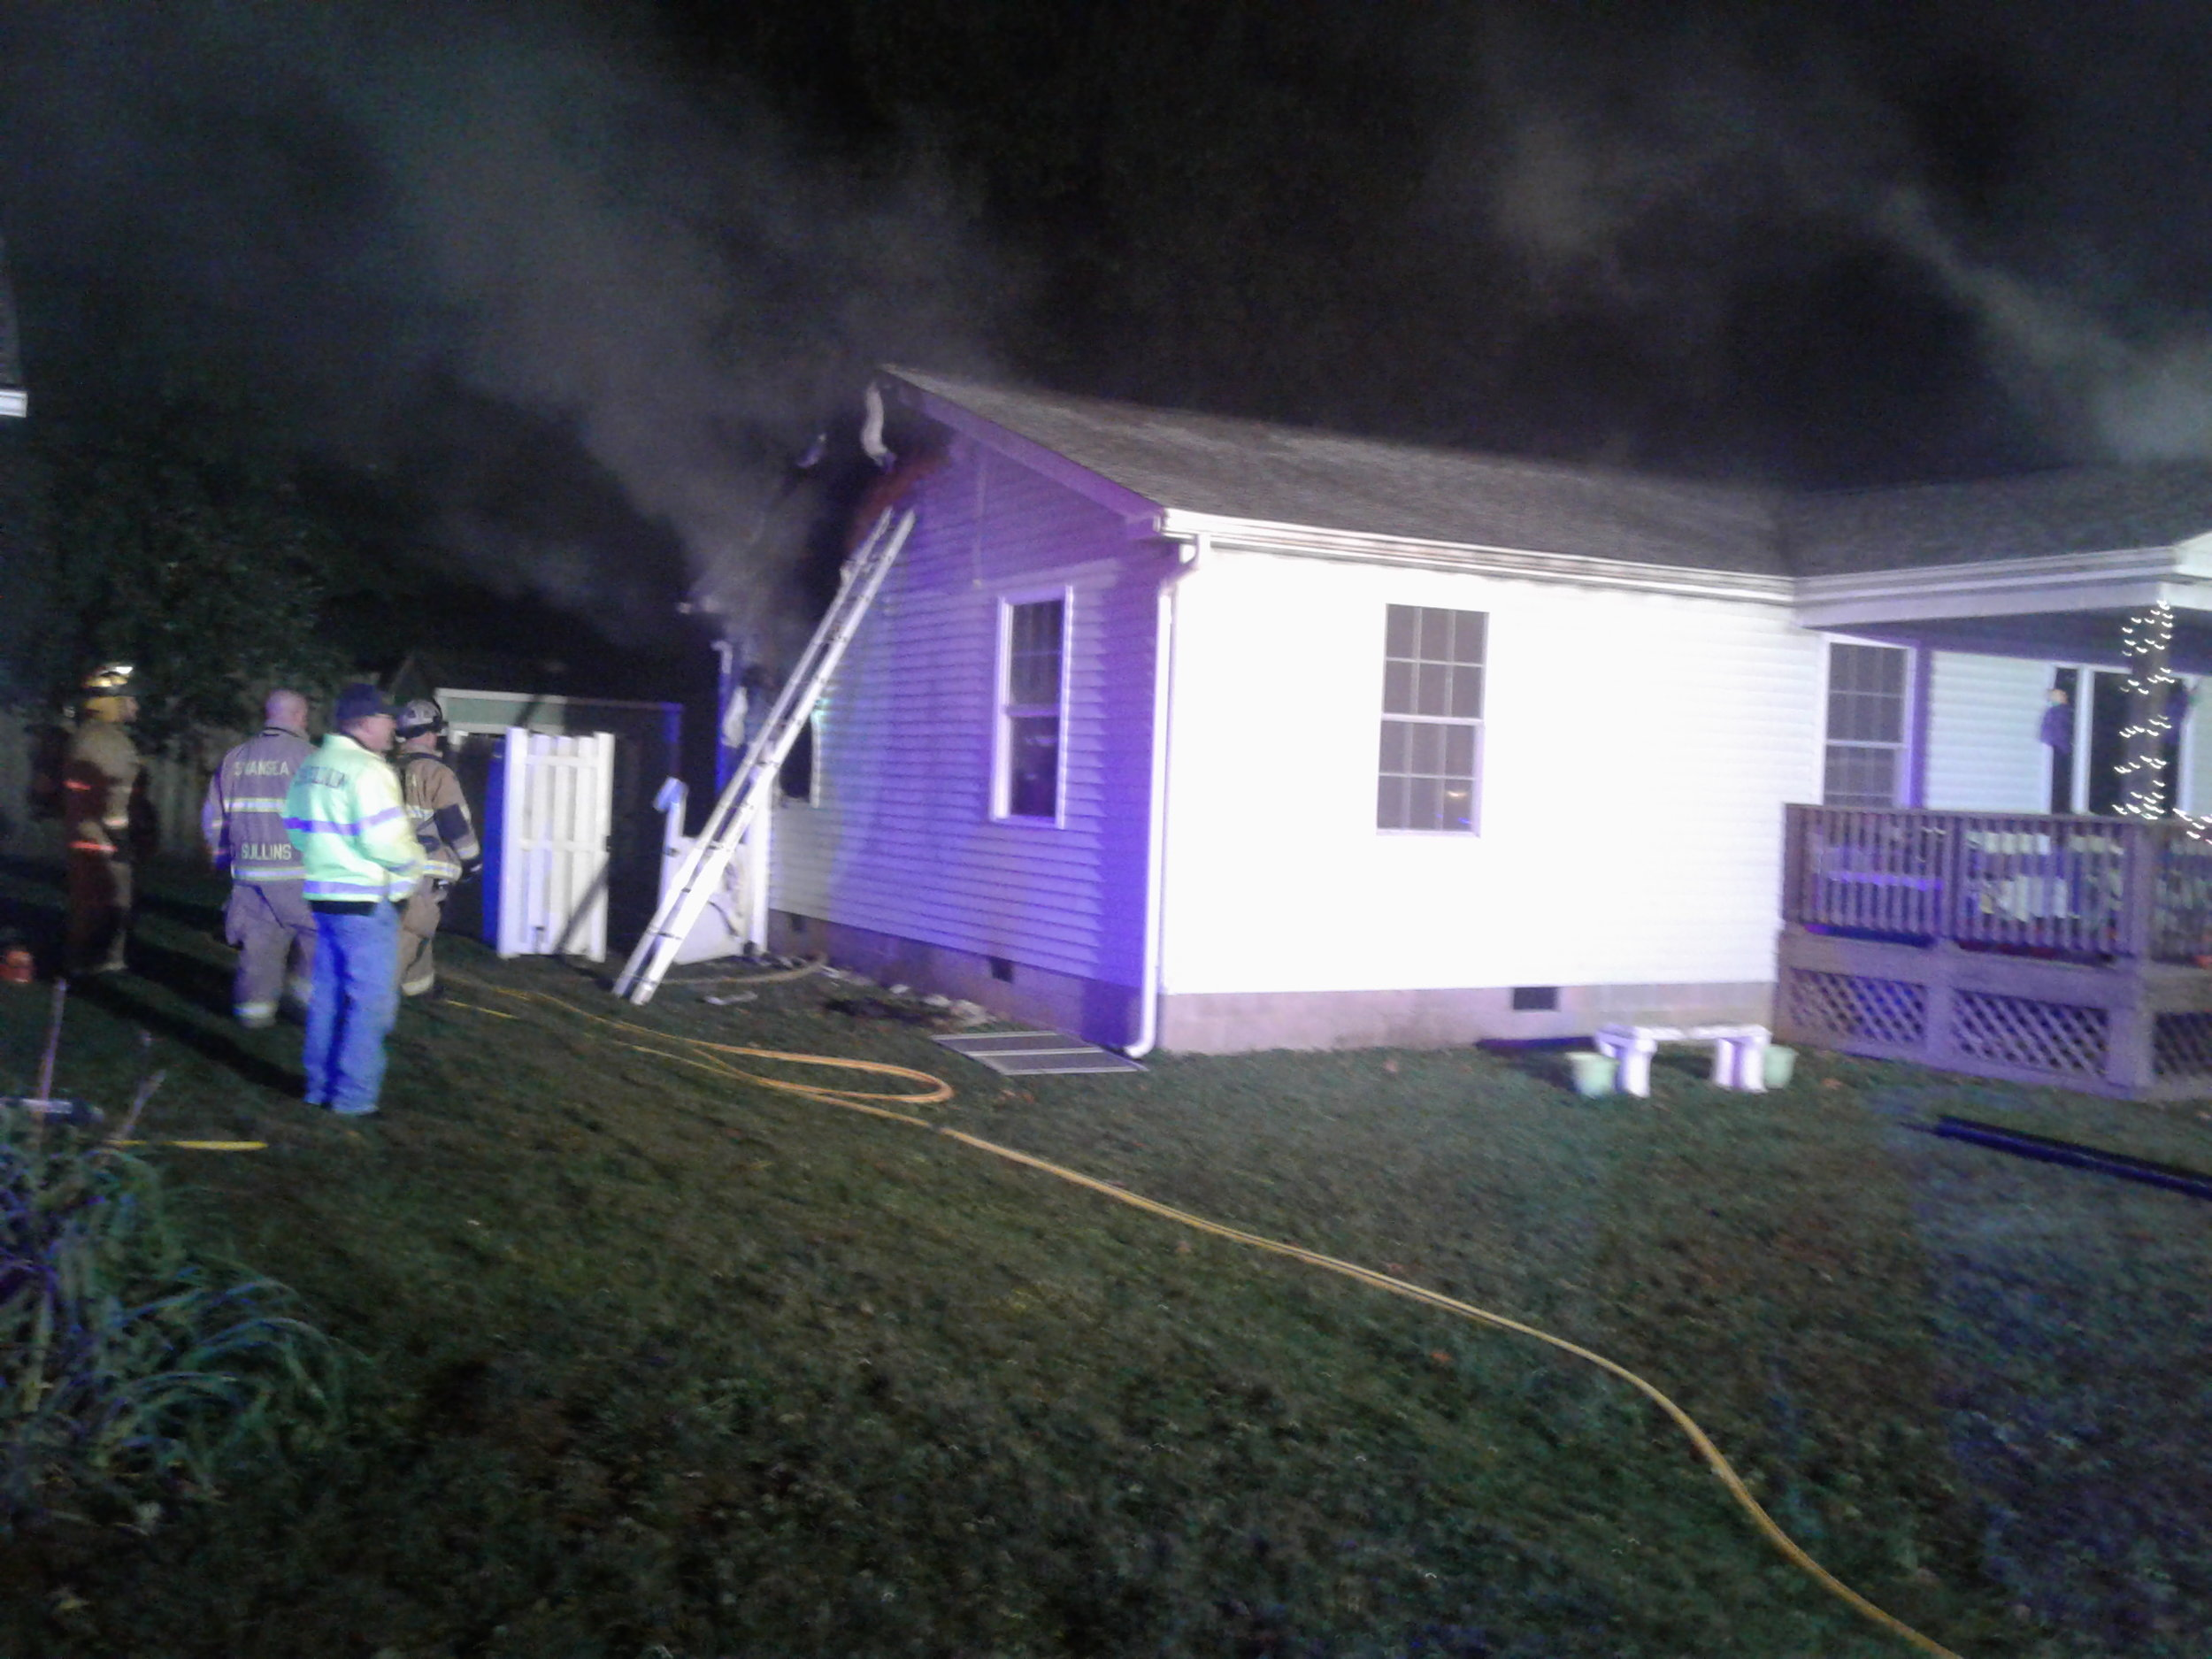 On October 20, 2018, East Side Fire with mutual aid from Swansea Fire Department responded for a residential structure fire. Firefighters found heavy fire conditions on arrival. The fire was quickly brought under control.